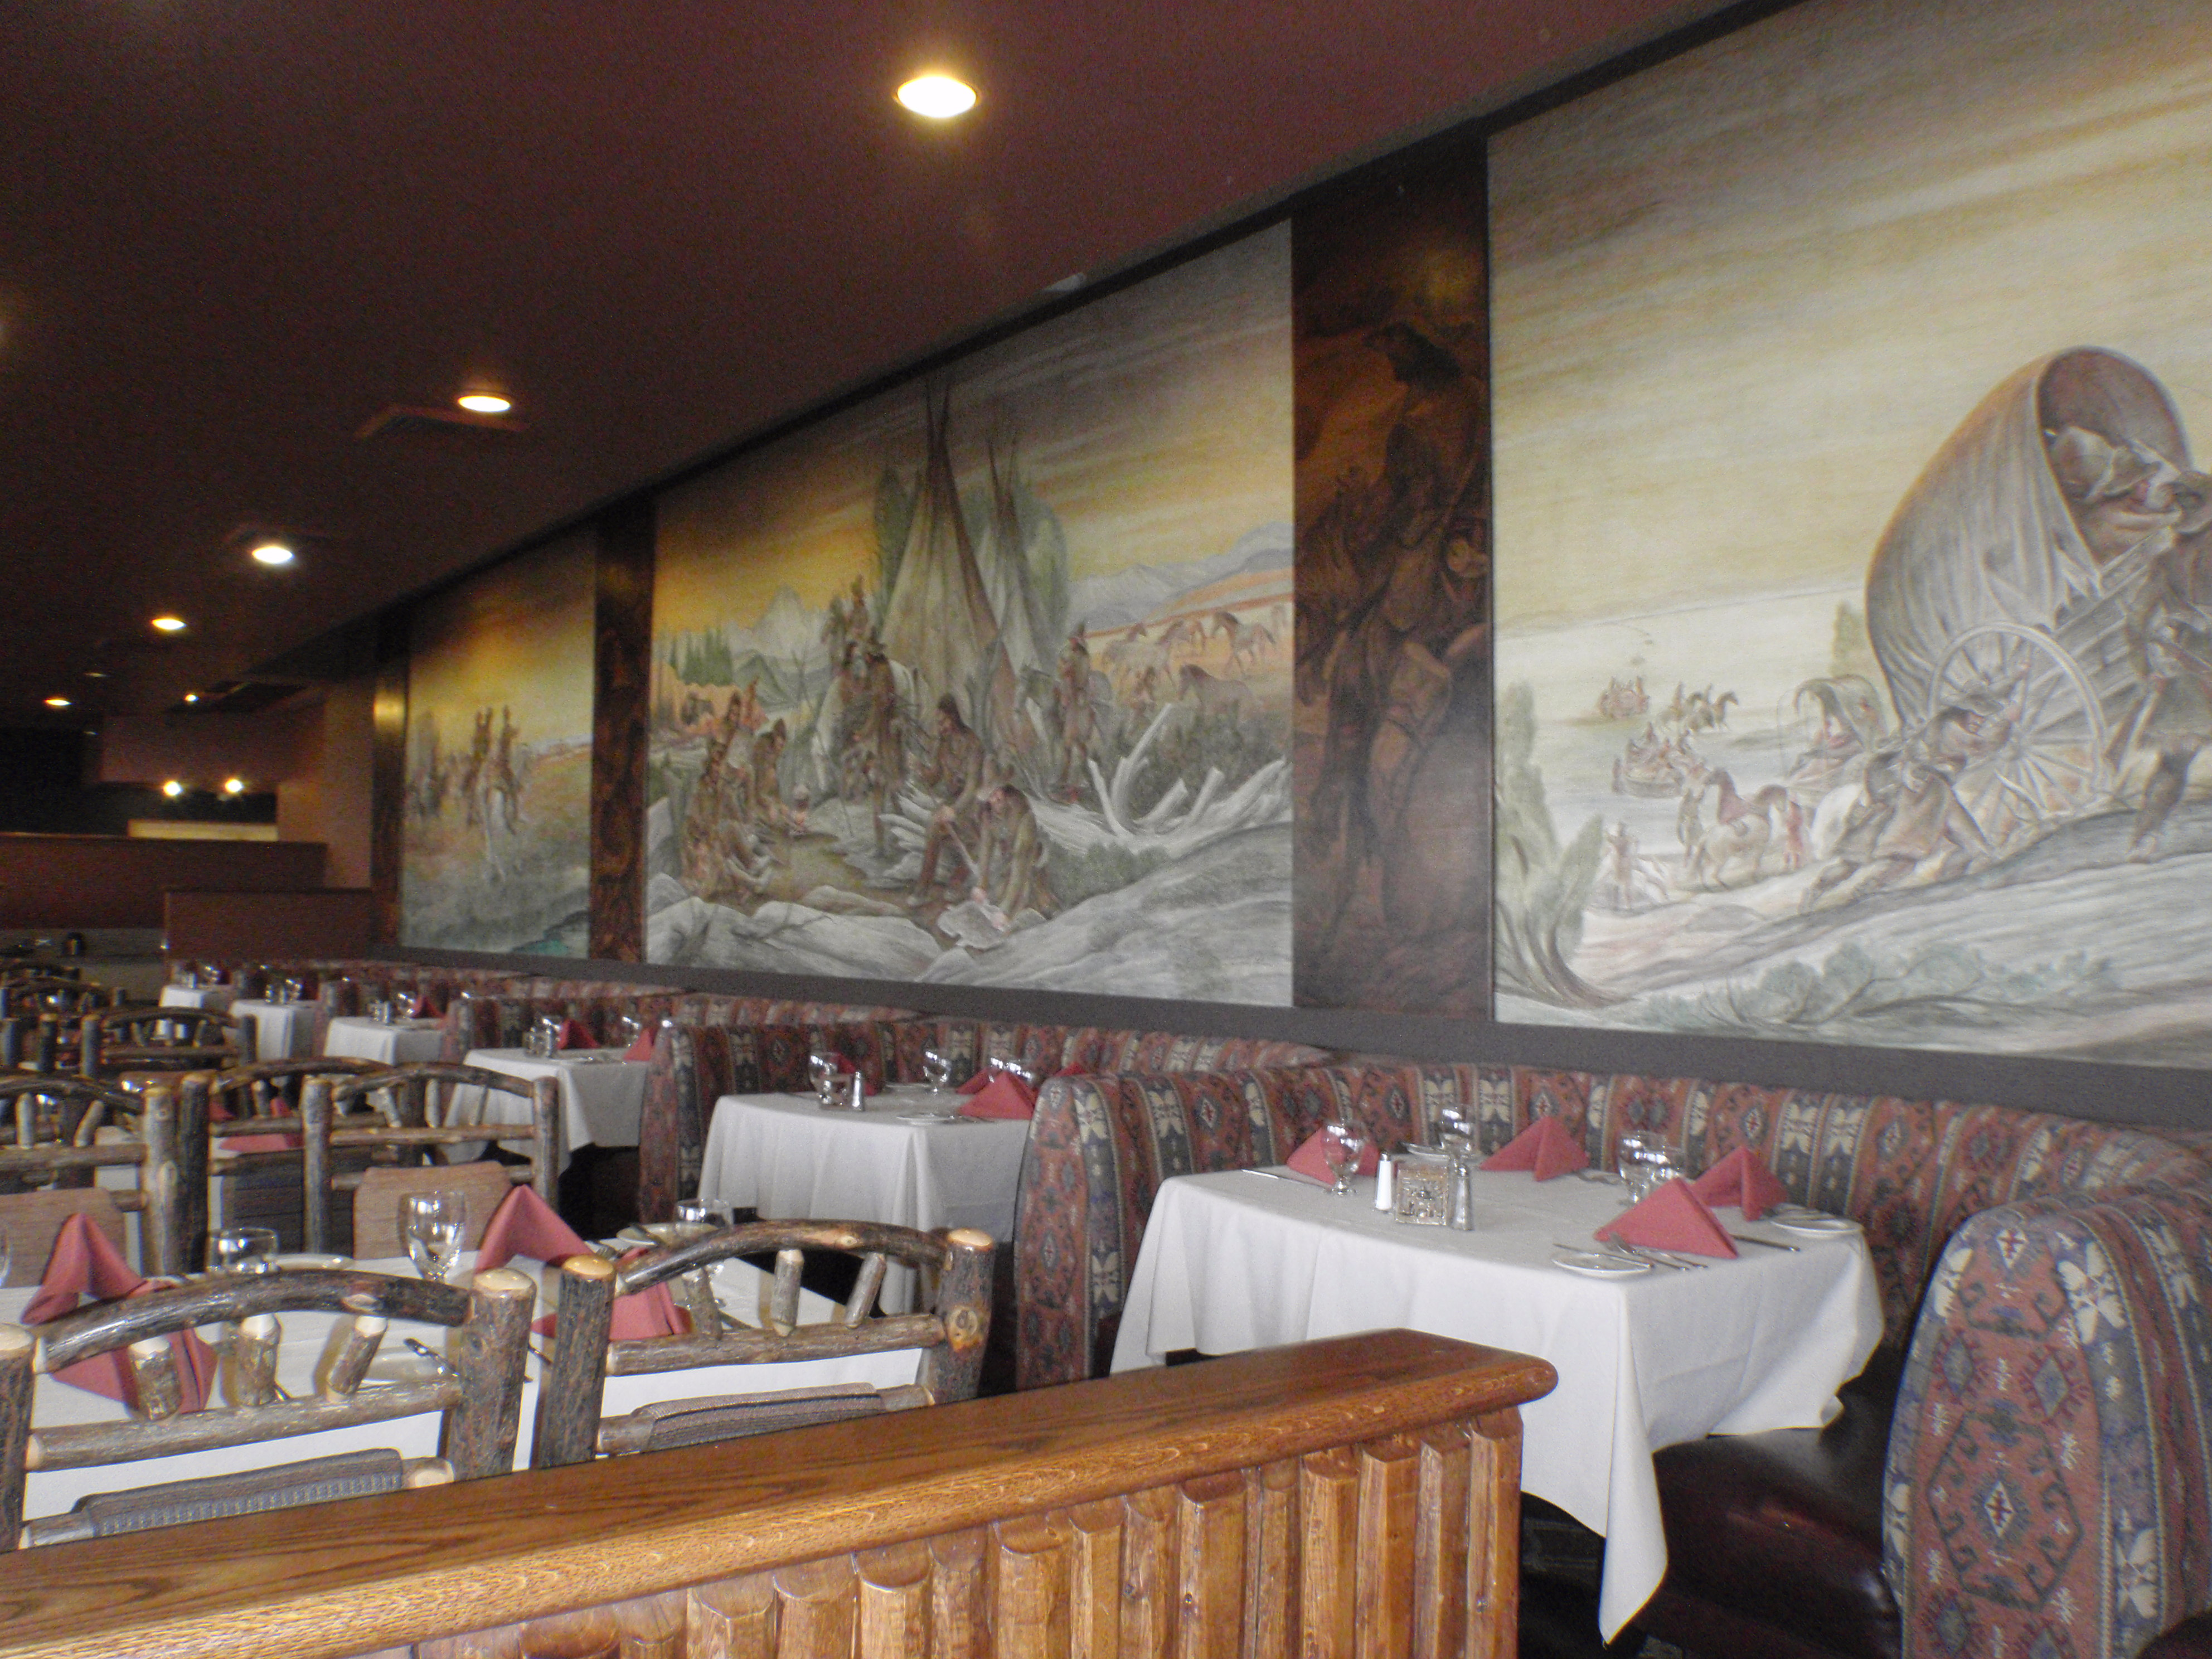 A few of Roters murals within the lodge's Mural Room.